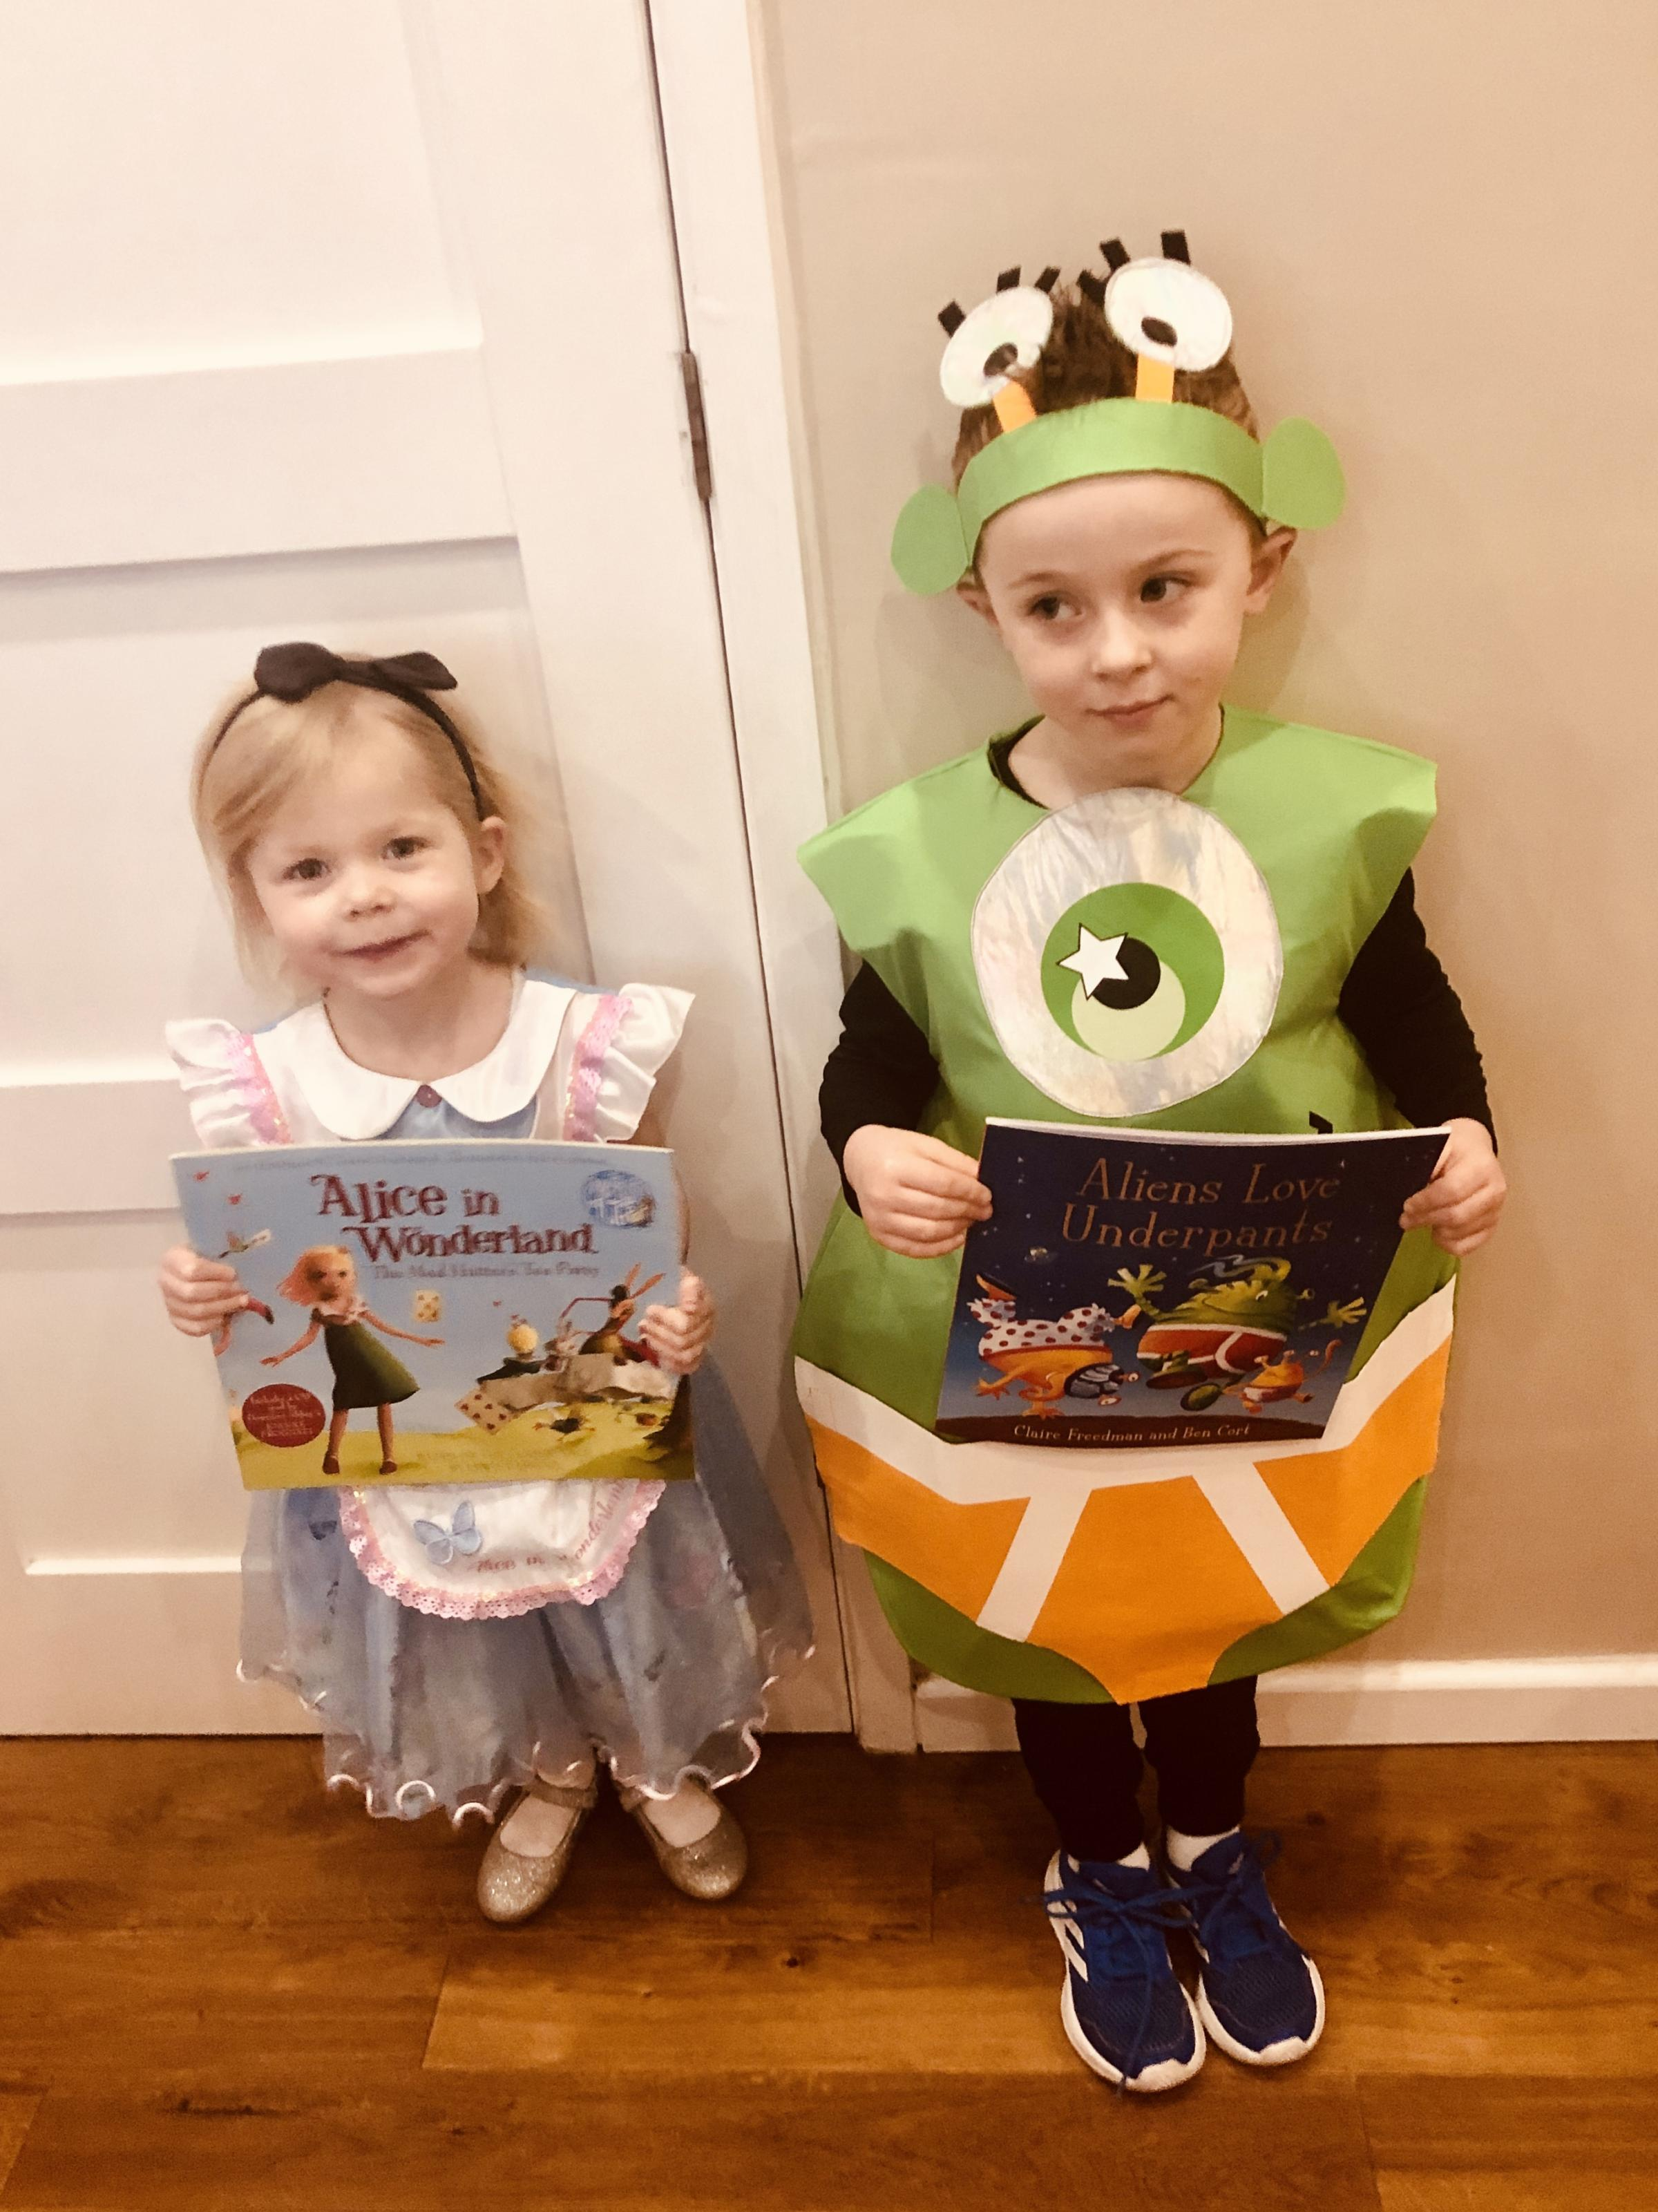 Droitwich Advertiser: This is Molly, age 3 as Alice in wonderland (the Wendy house day nursery) and William, age 5 as Alien loves underpants (Lickey End First School).